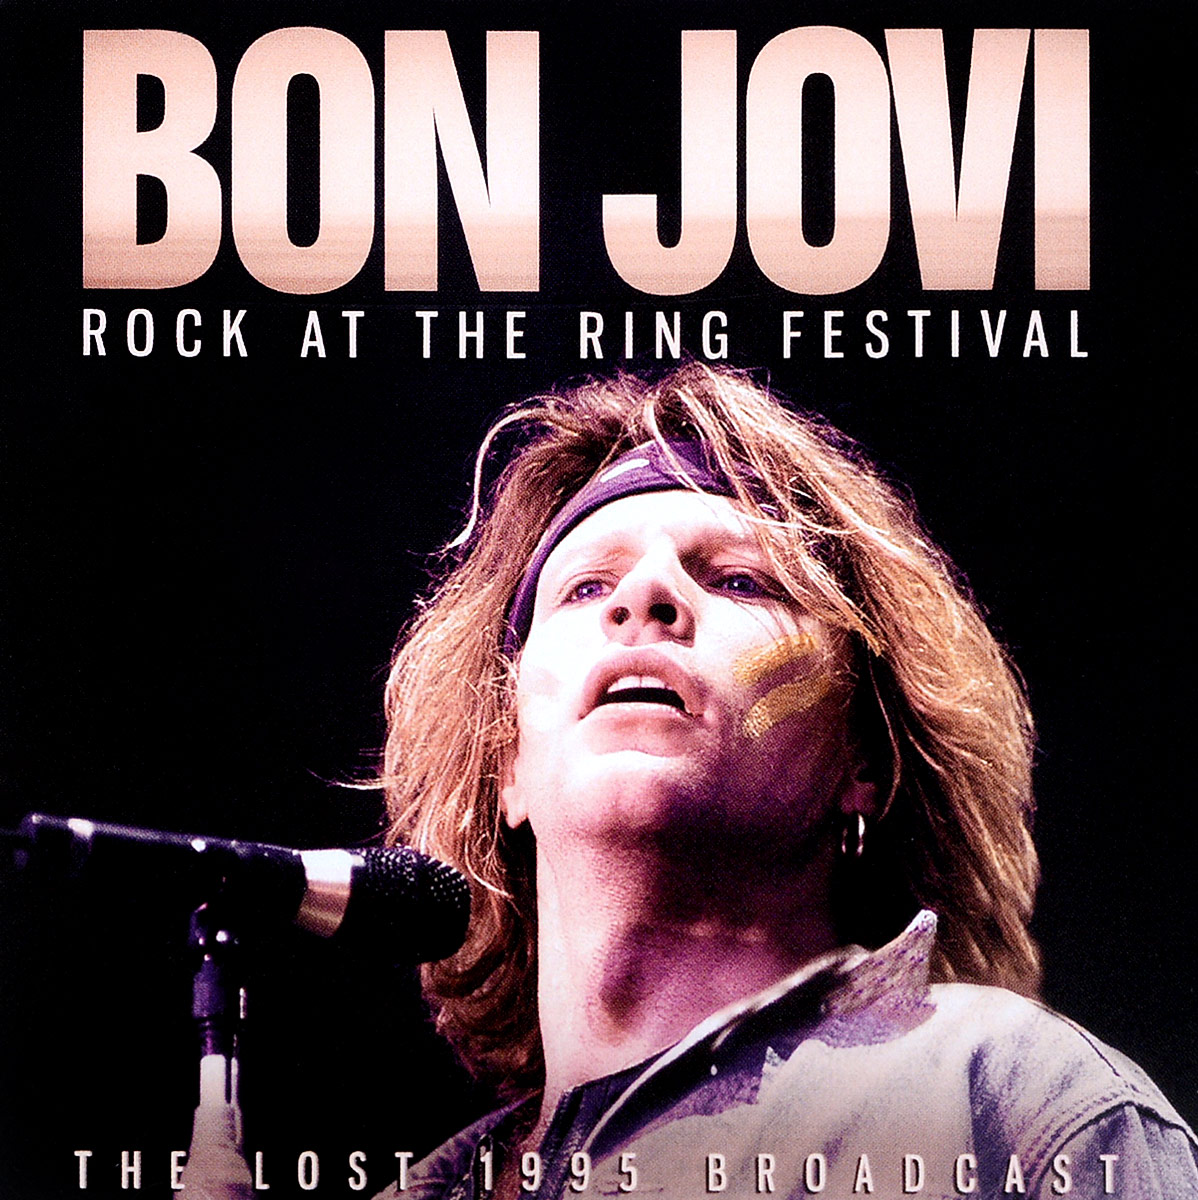 Bon Jovi Bon Jovi. Rock at the Ring Festival fuji rock festival 2017 niigata saturday